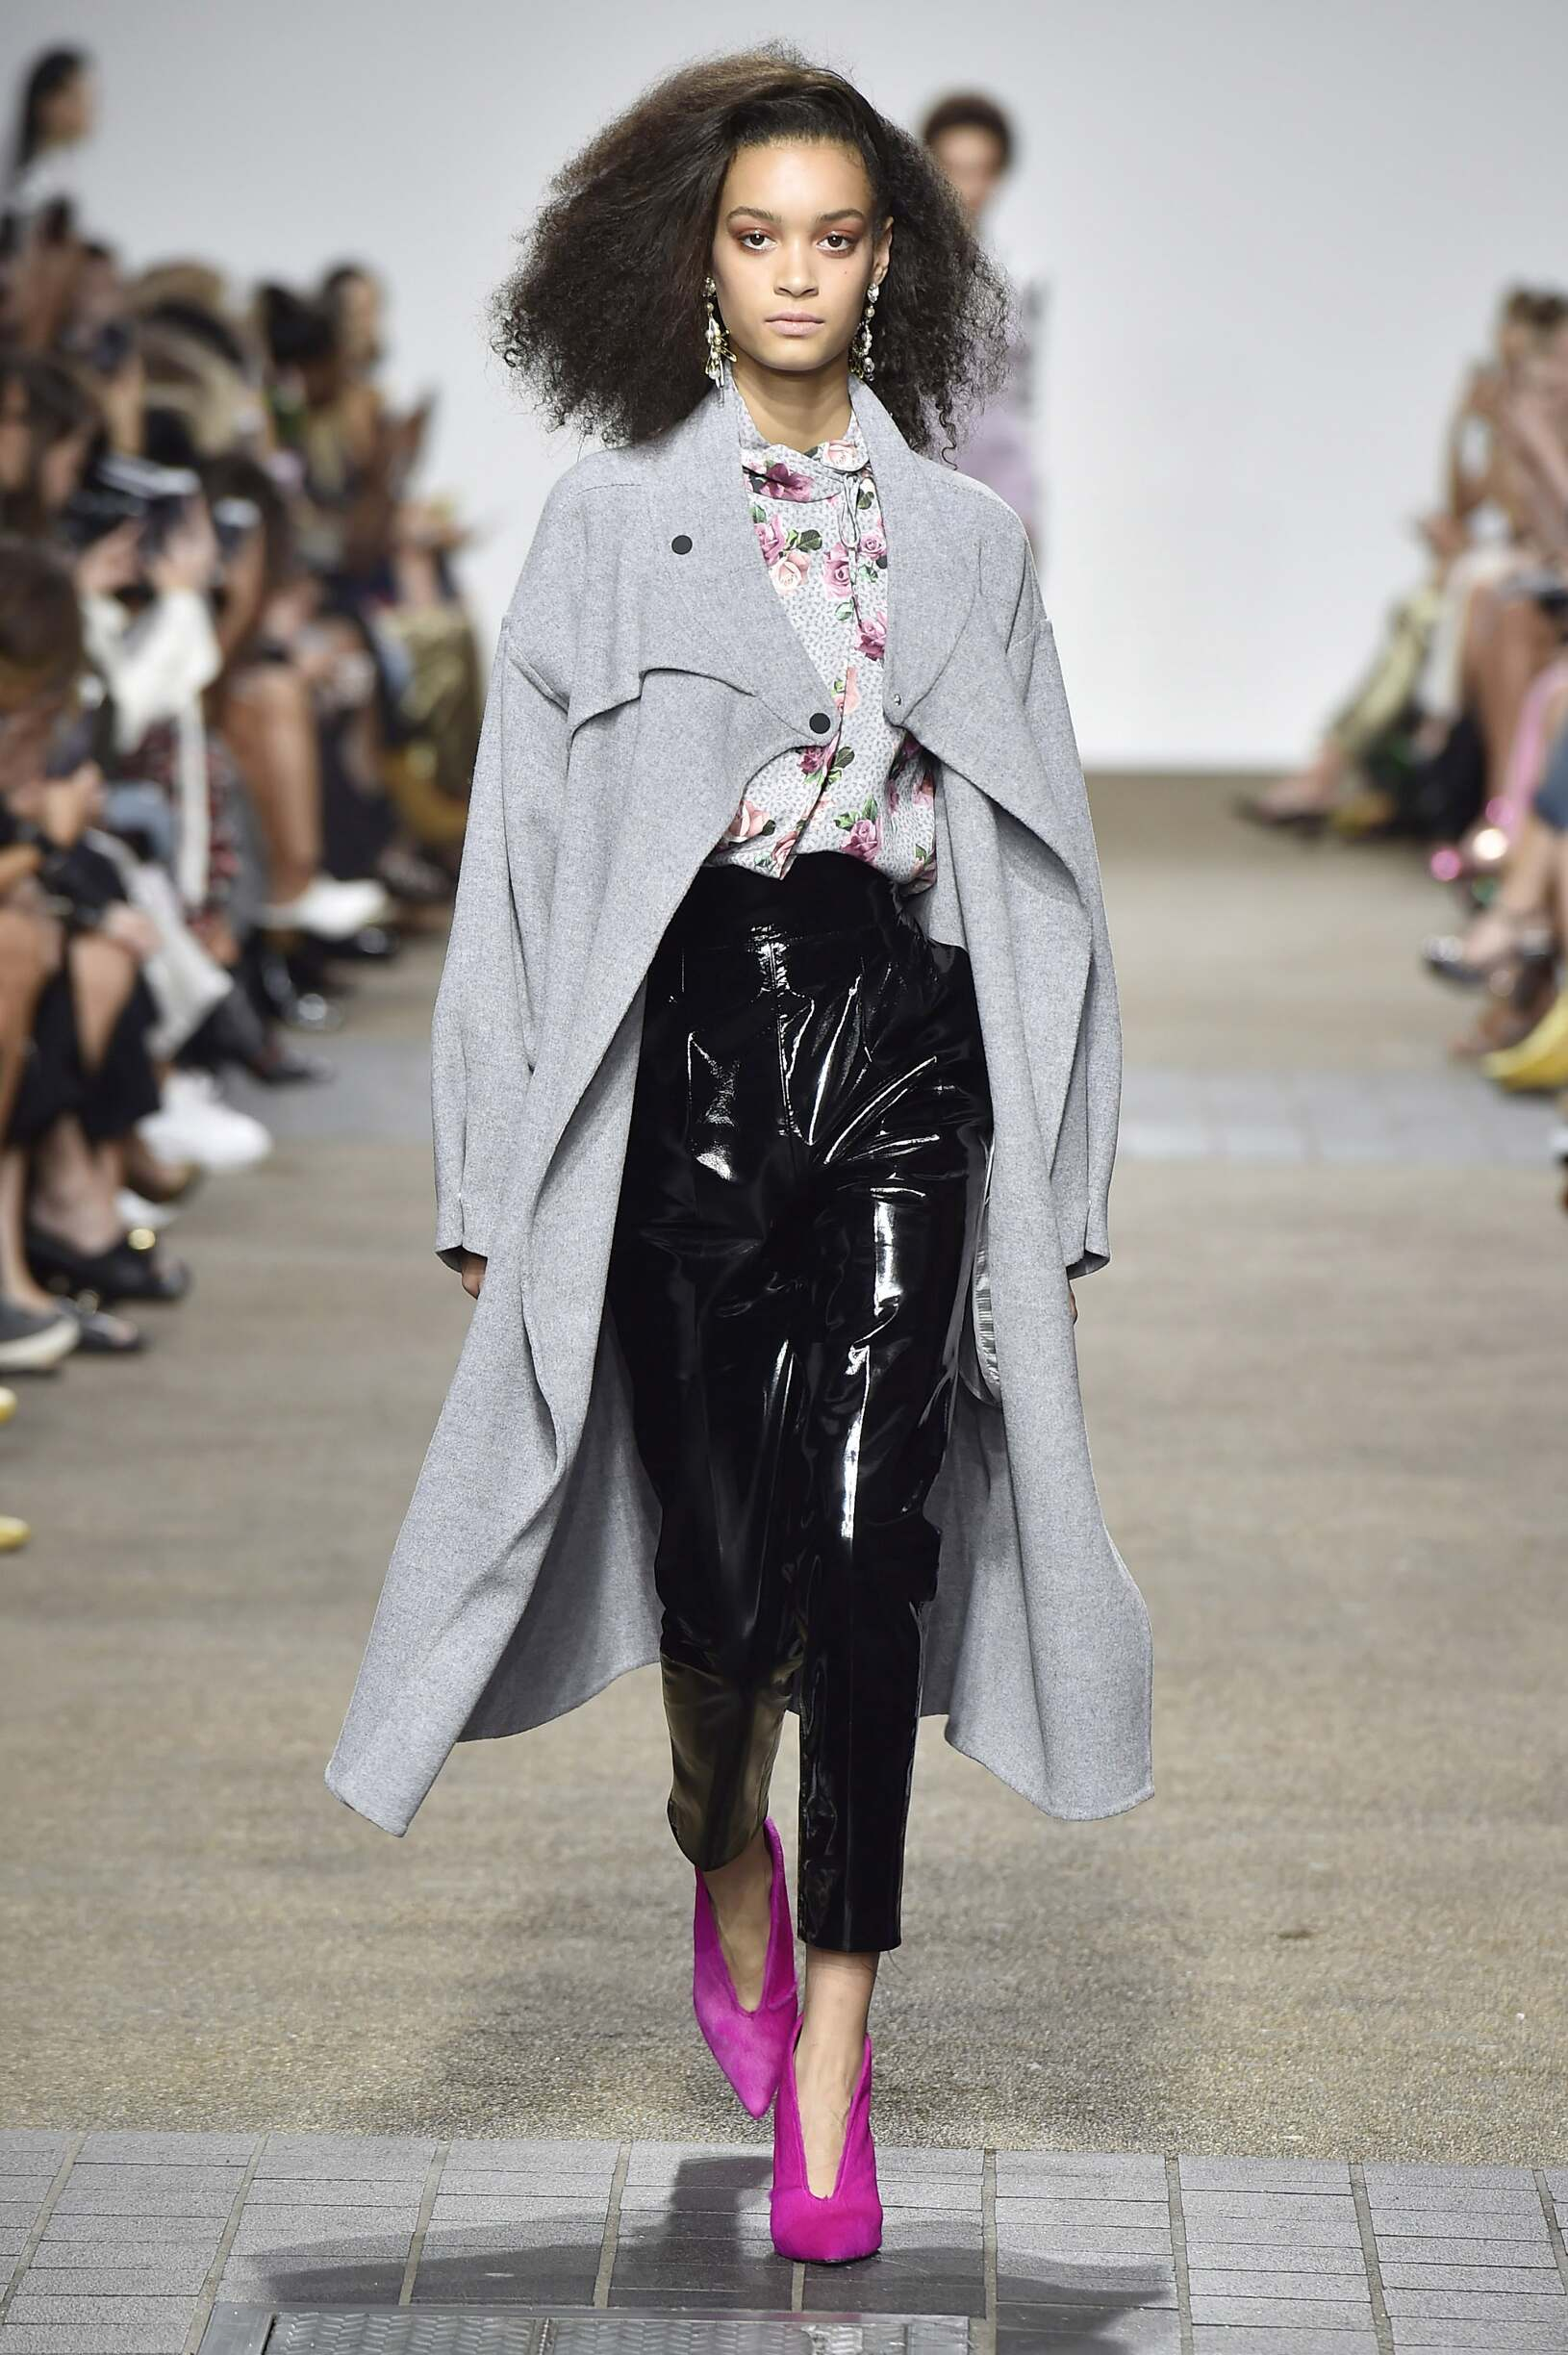 Topshop Unique September 2016 Collection Womenswear